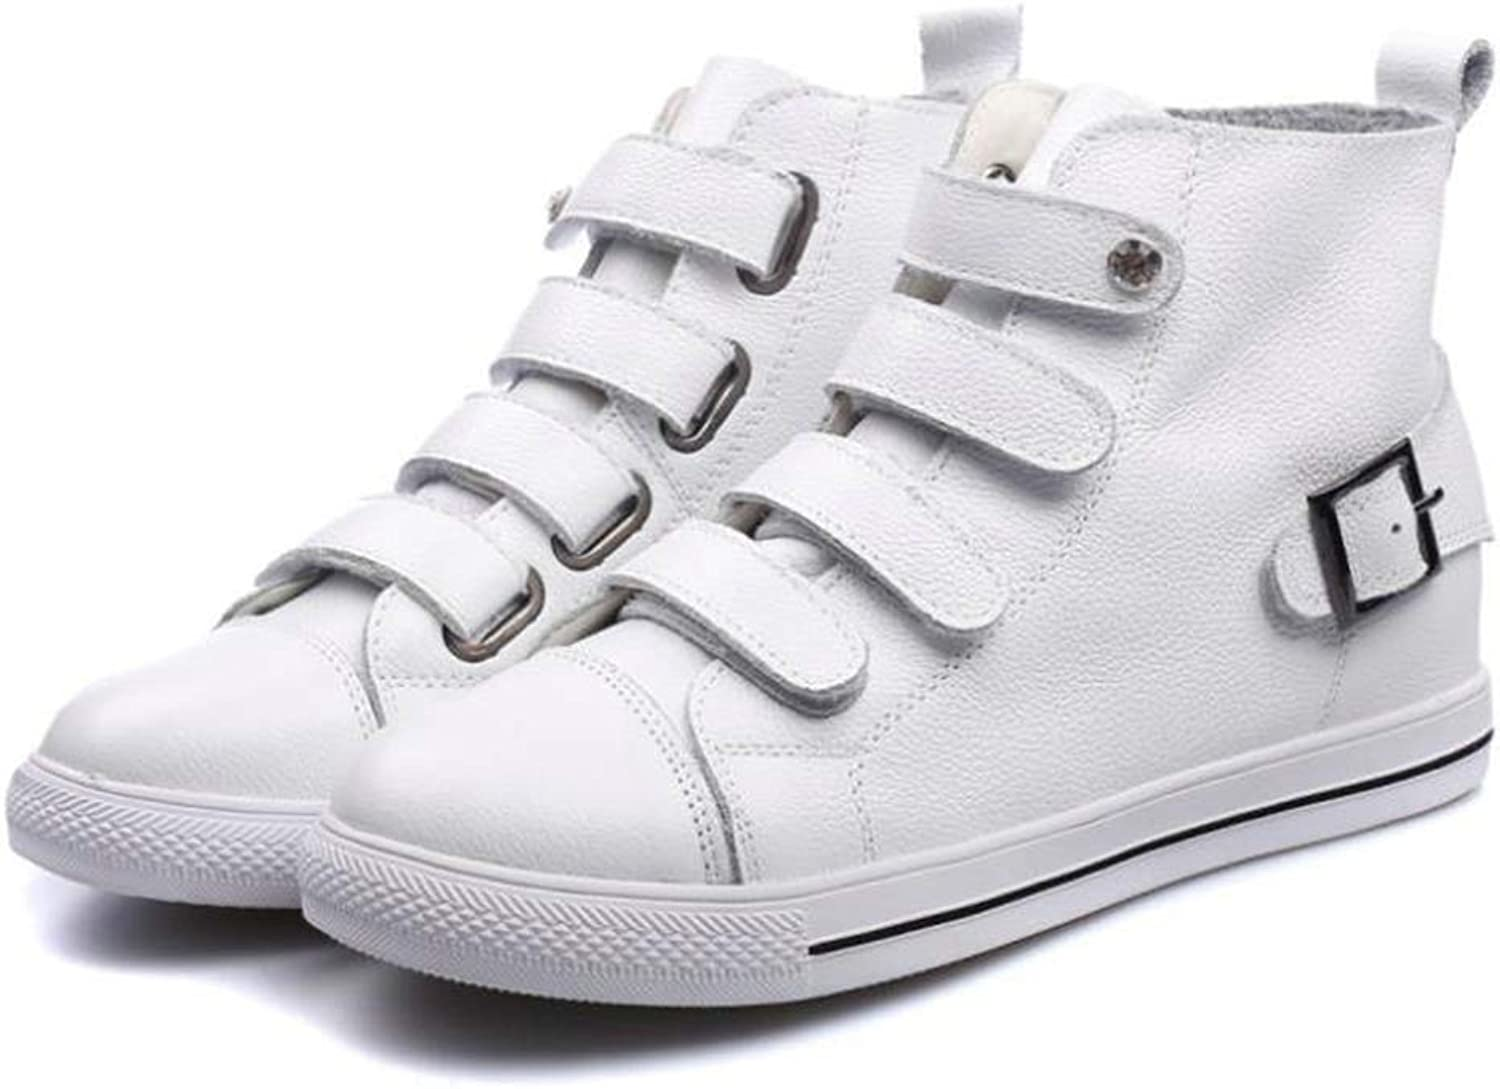 Hoxekle Women Faux Leather High-top Sneakers shoes Woman Wedge Height Increasing shoes Female shoes for Student